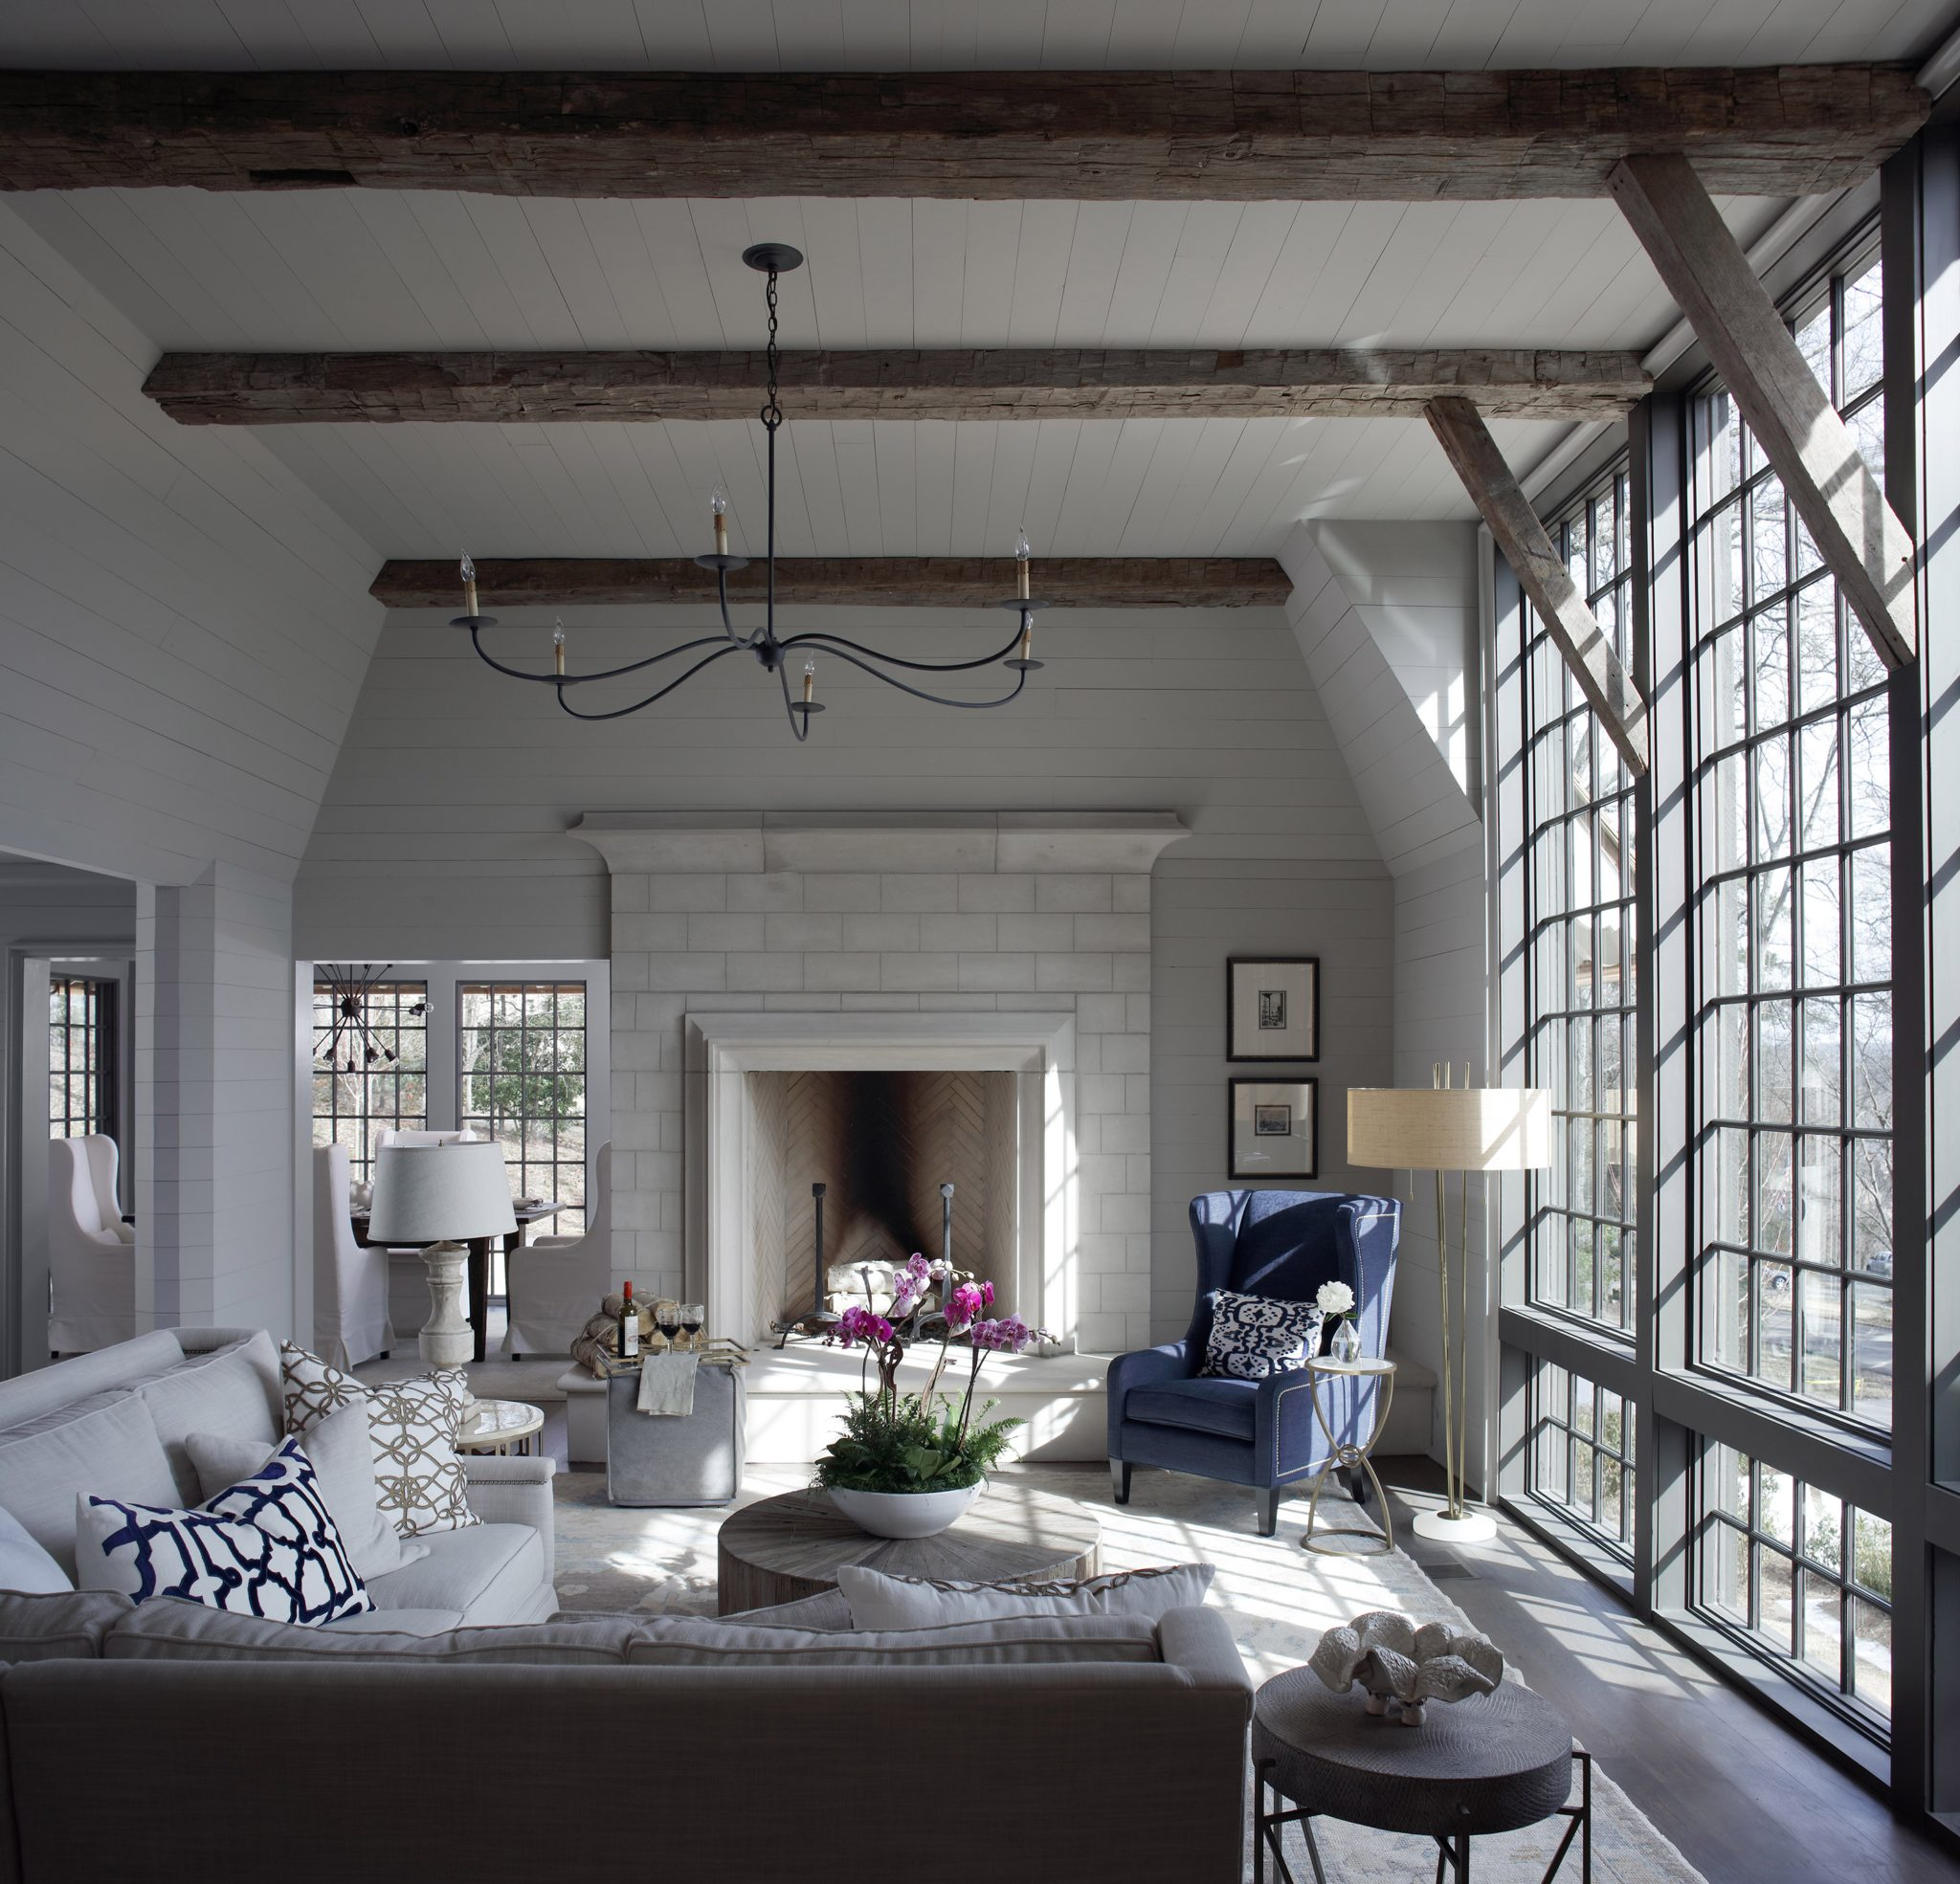 A sleek, long-armed chandelier from Currey & Company ushers delicacyinto the design of the great room. The sofas, coffe table, and armchair are from Gabby. Underneath, a rug fromKing's House Oriental Rugs in mixed neutrals offers a creative foundational layerfor the furnishings.